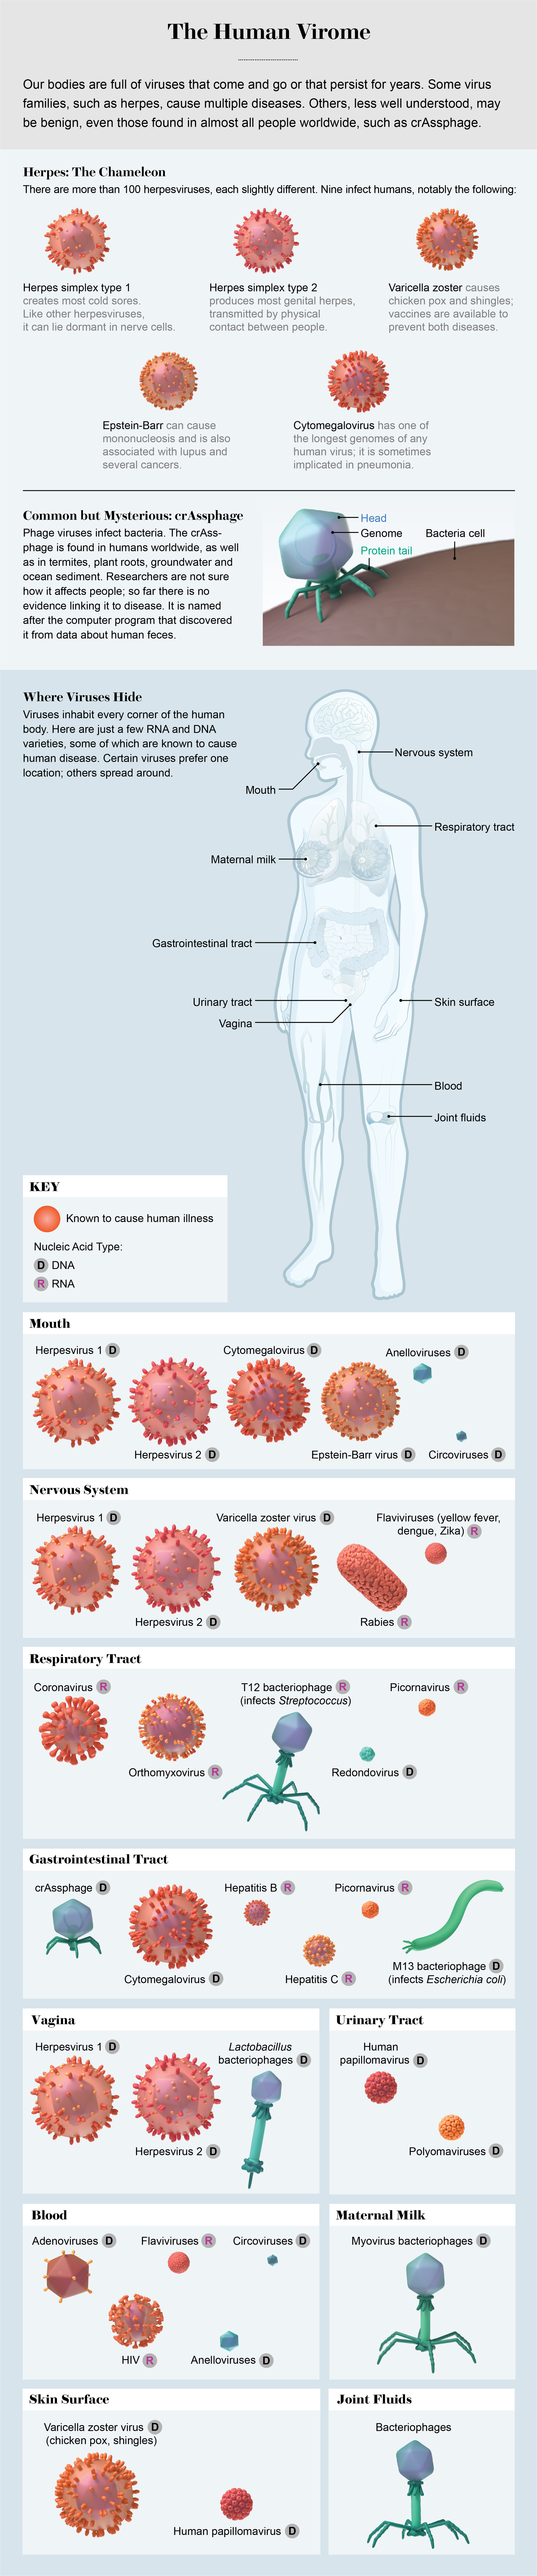 Areas where some common virus species can live in the human body